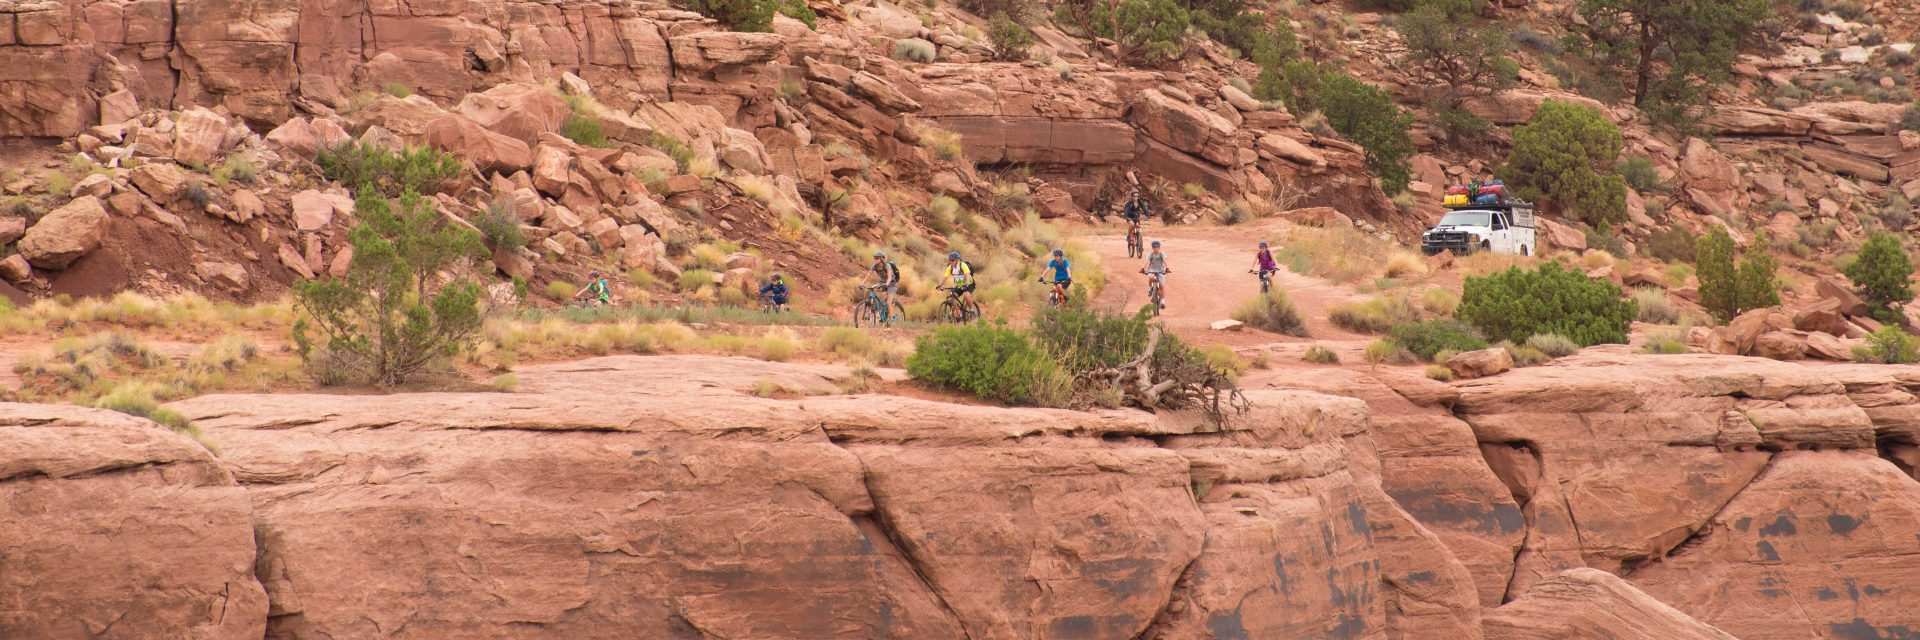 Group mountain biking along the top of The Shafer Trail, White Rim and Canyonlands Full Day guided tour